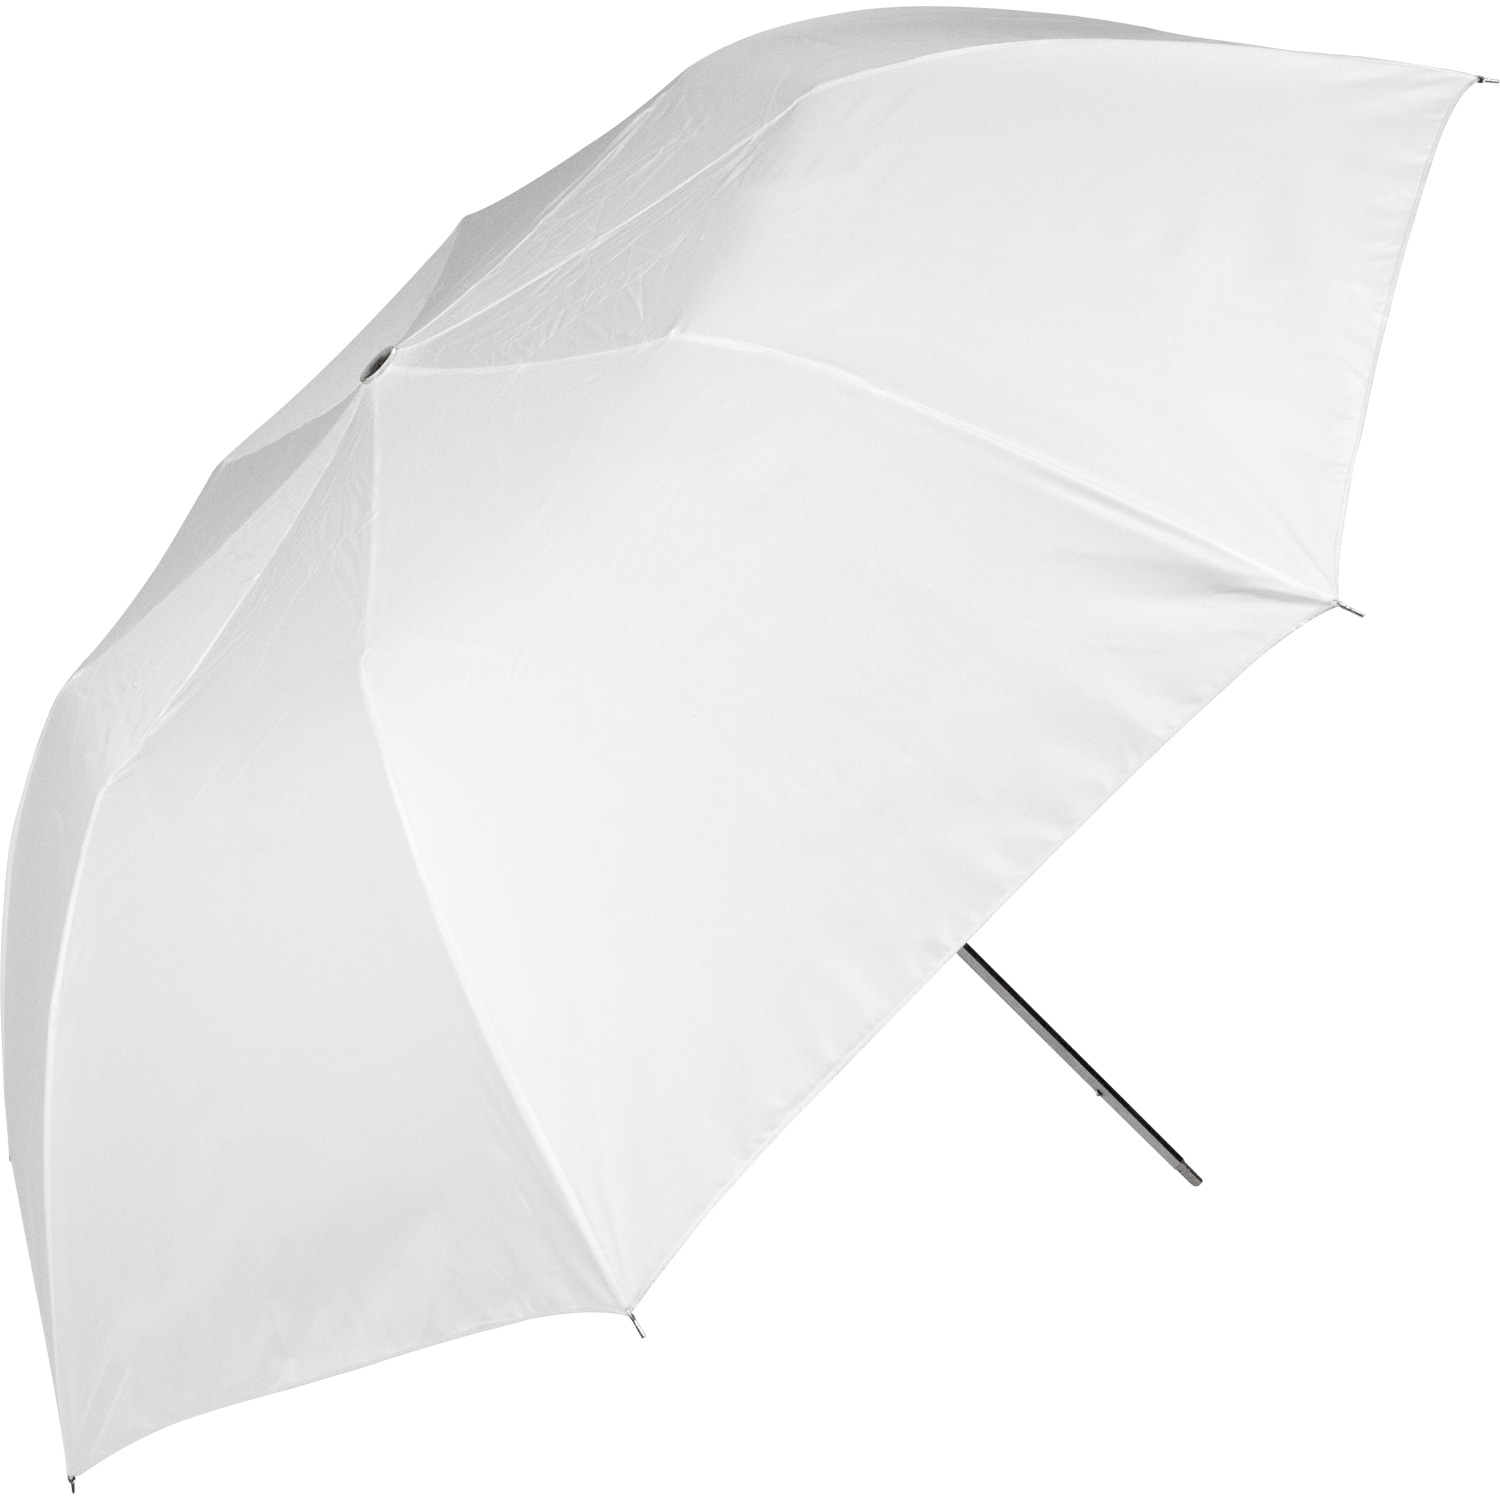 43-in. White Satin Collapsible Umbrella